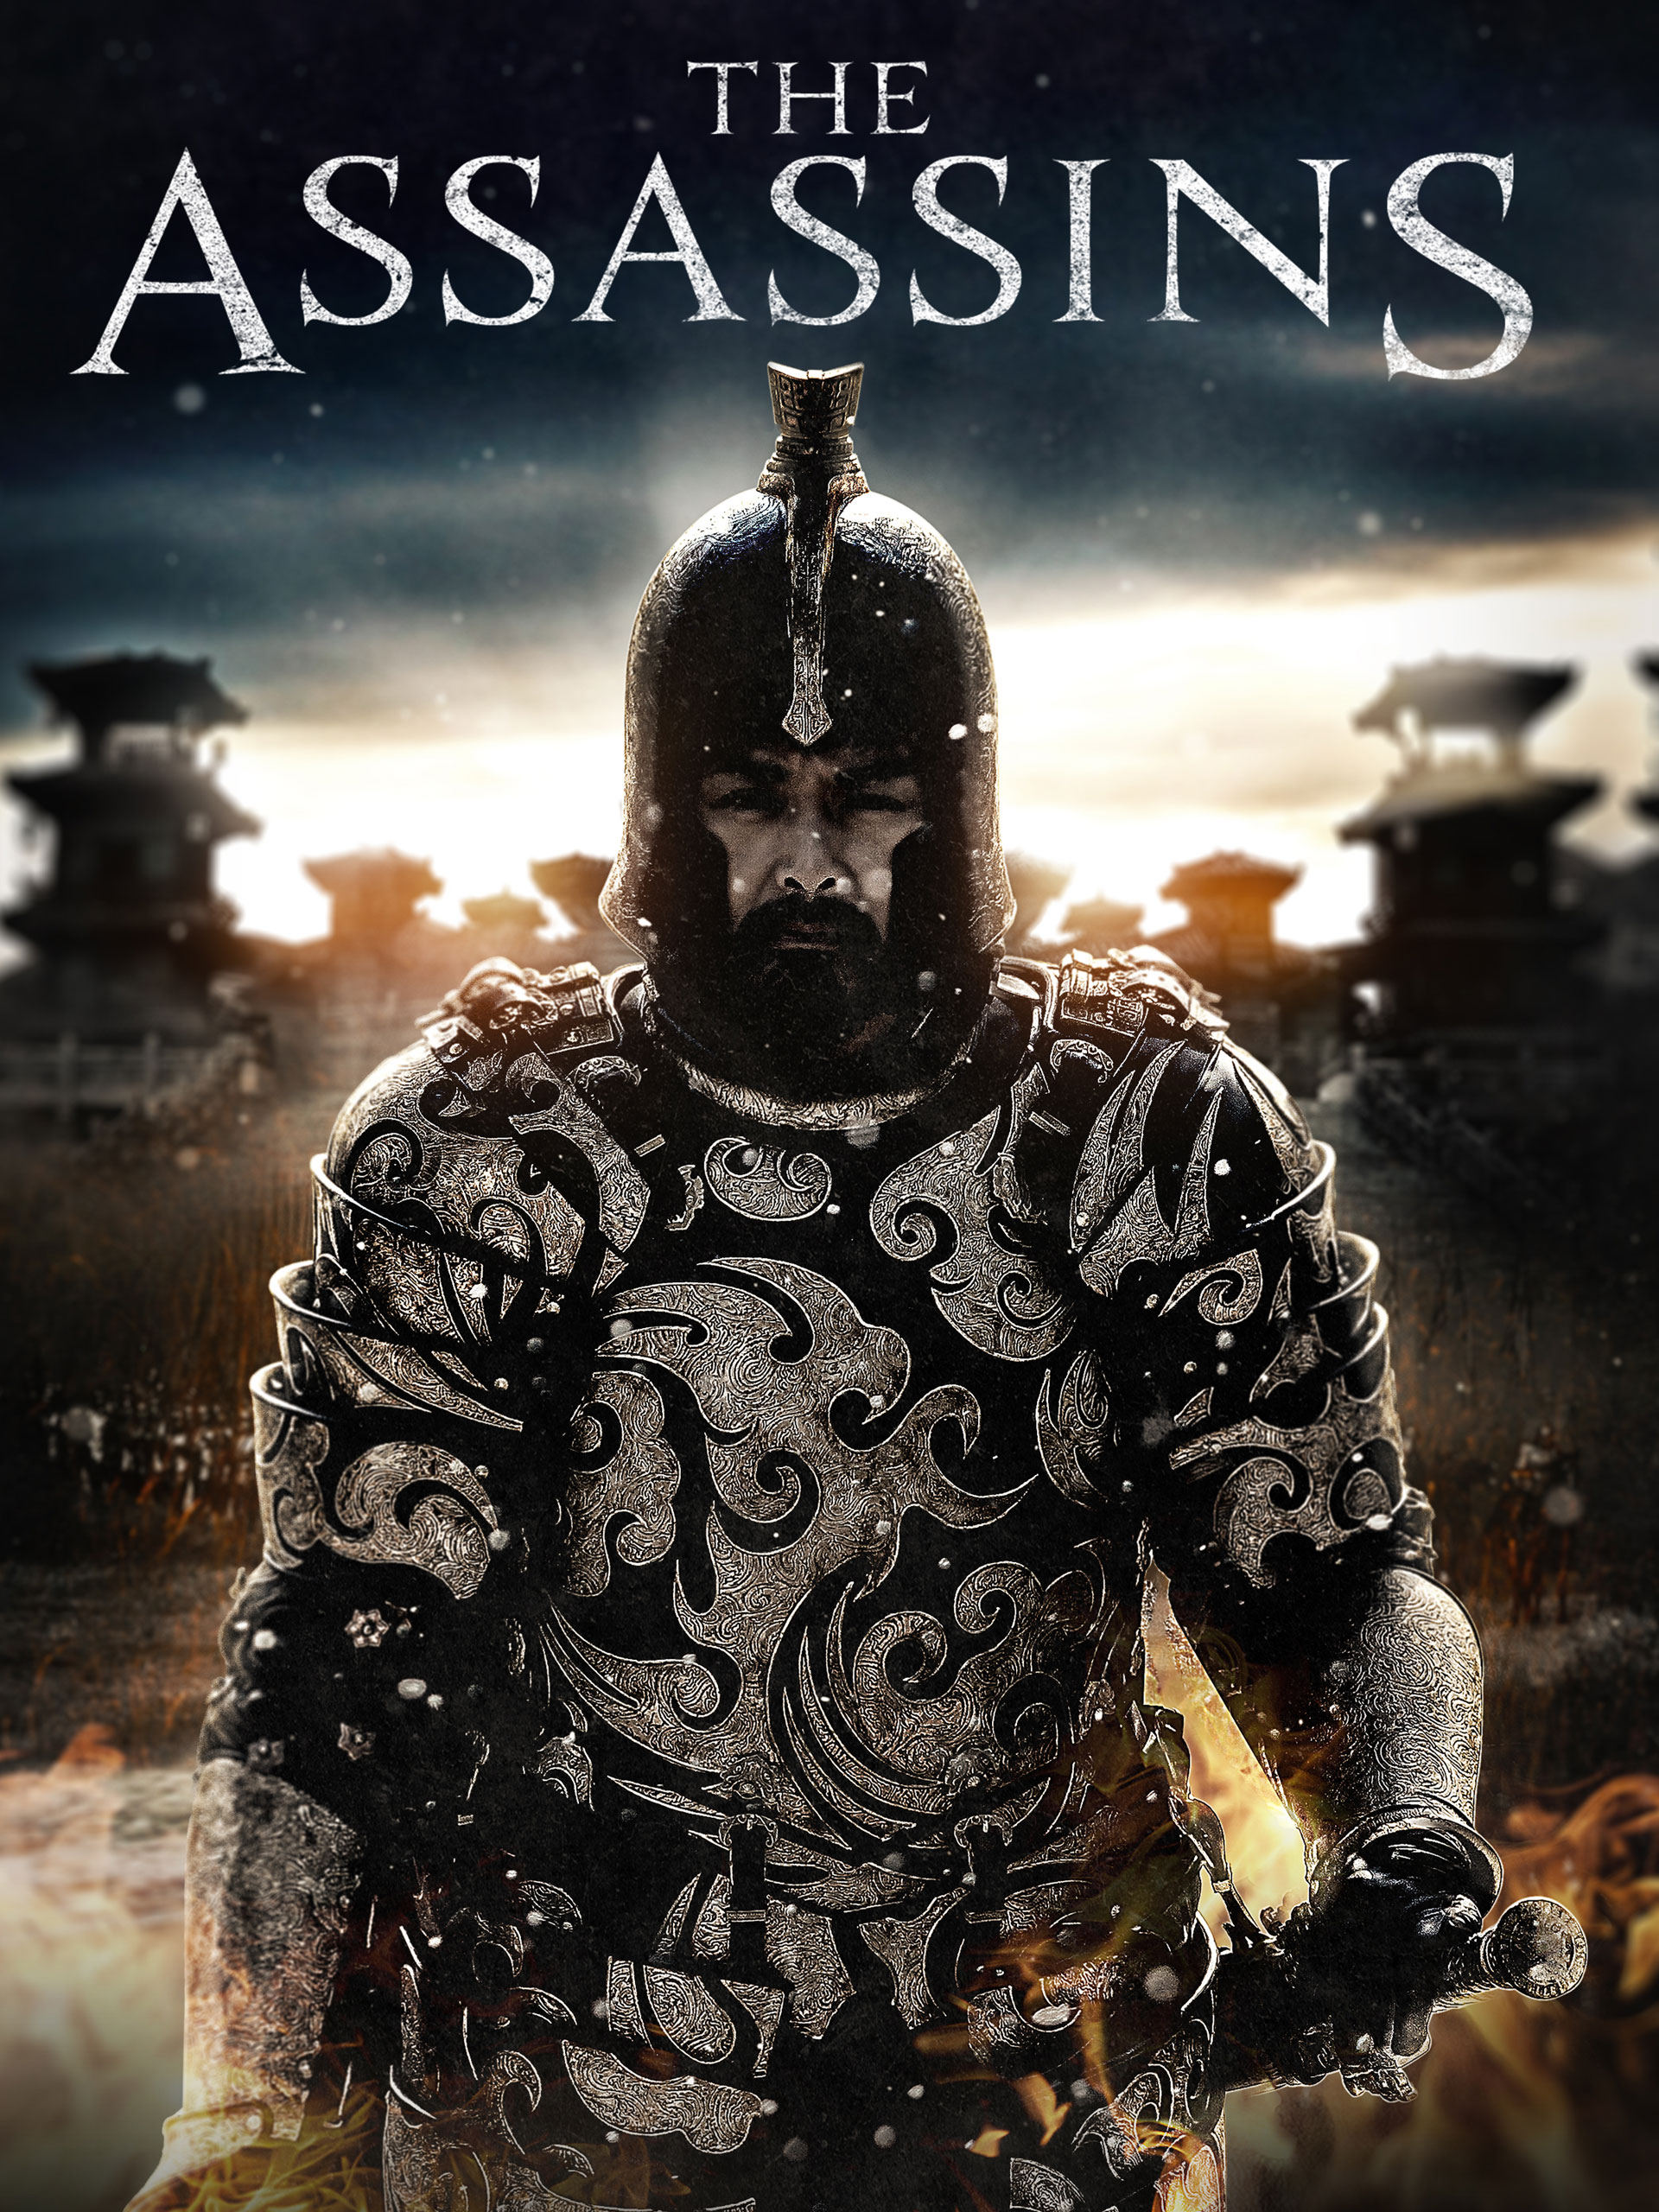 The Assassins - New Video Digital - Cinedigm Entertainment